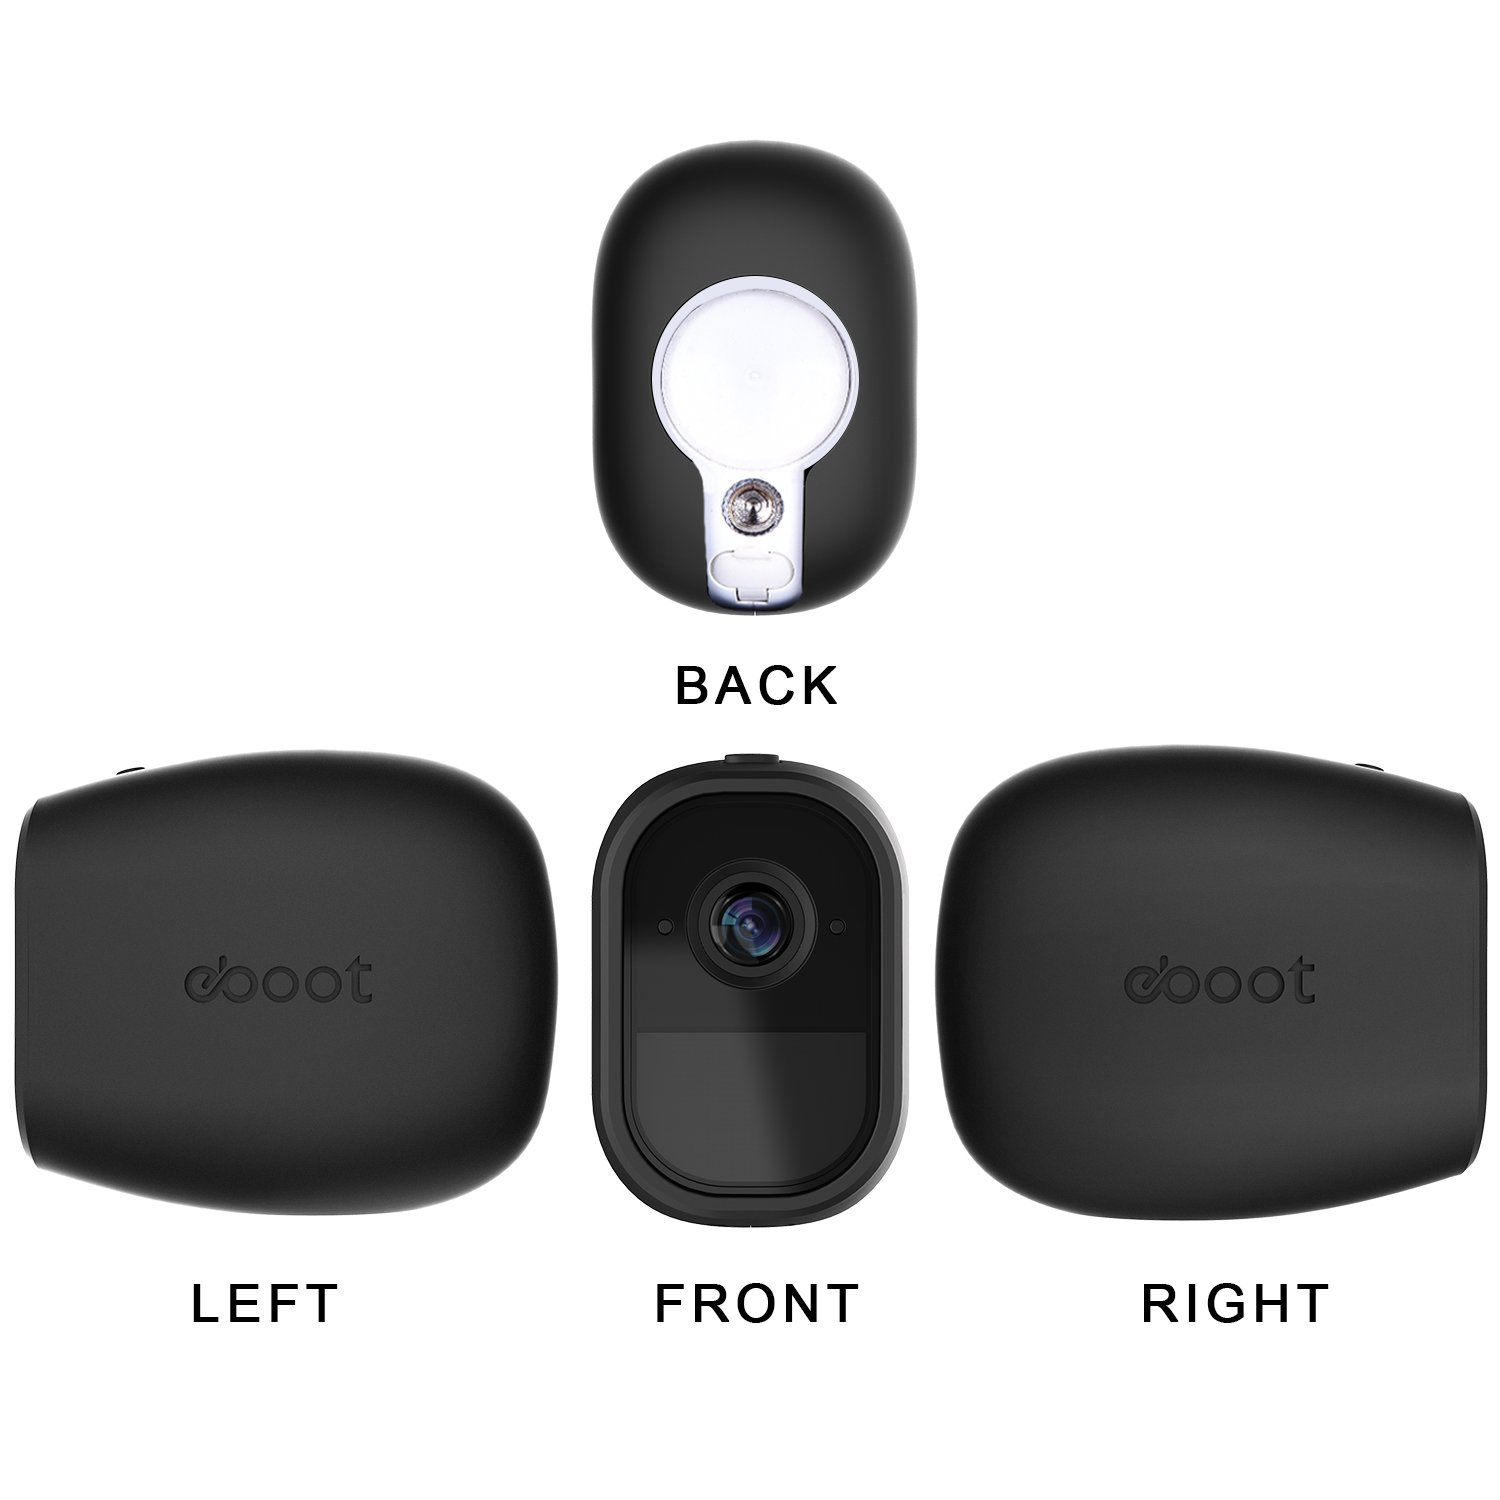 eBoot 3 Pack Silicone Skins Security Camera Skin for Arlo Pro Smart ...